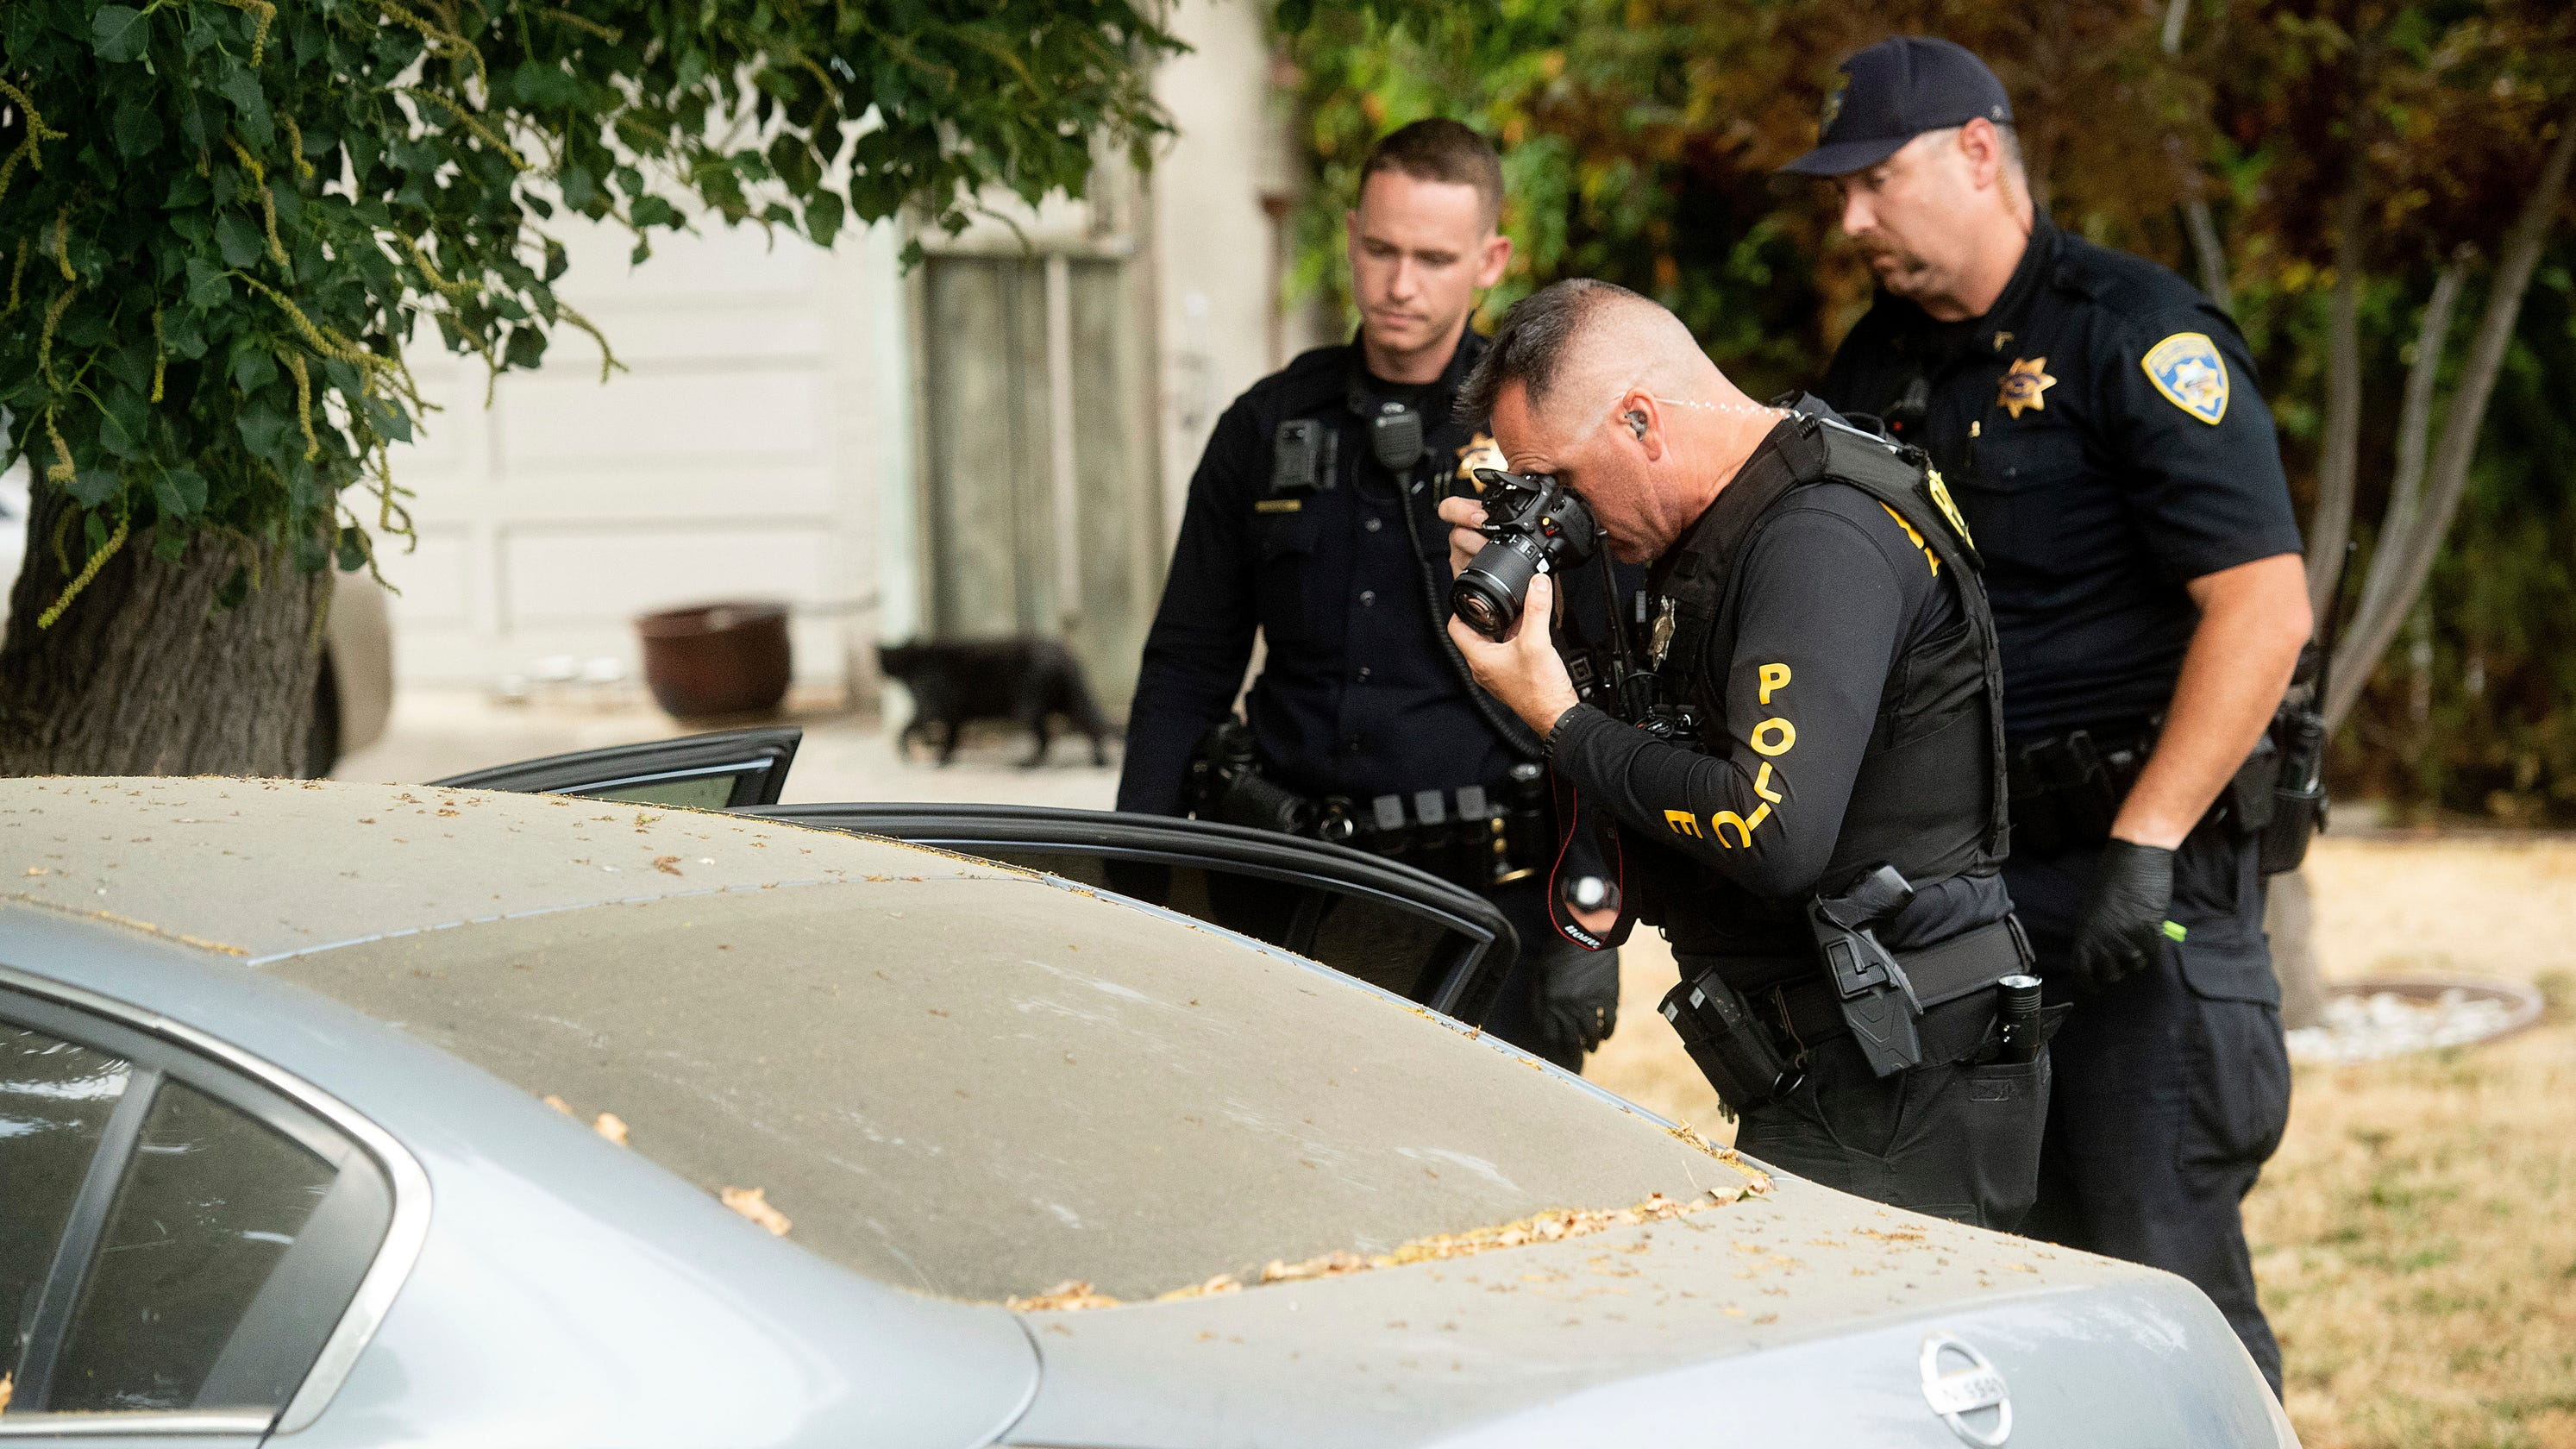 Santino William Legan, Gilroy shooter: Insta cited 'Might Makes Right'